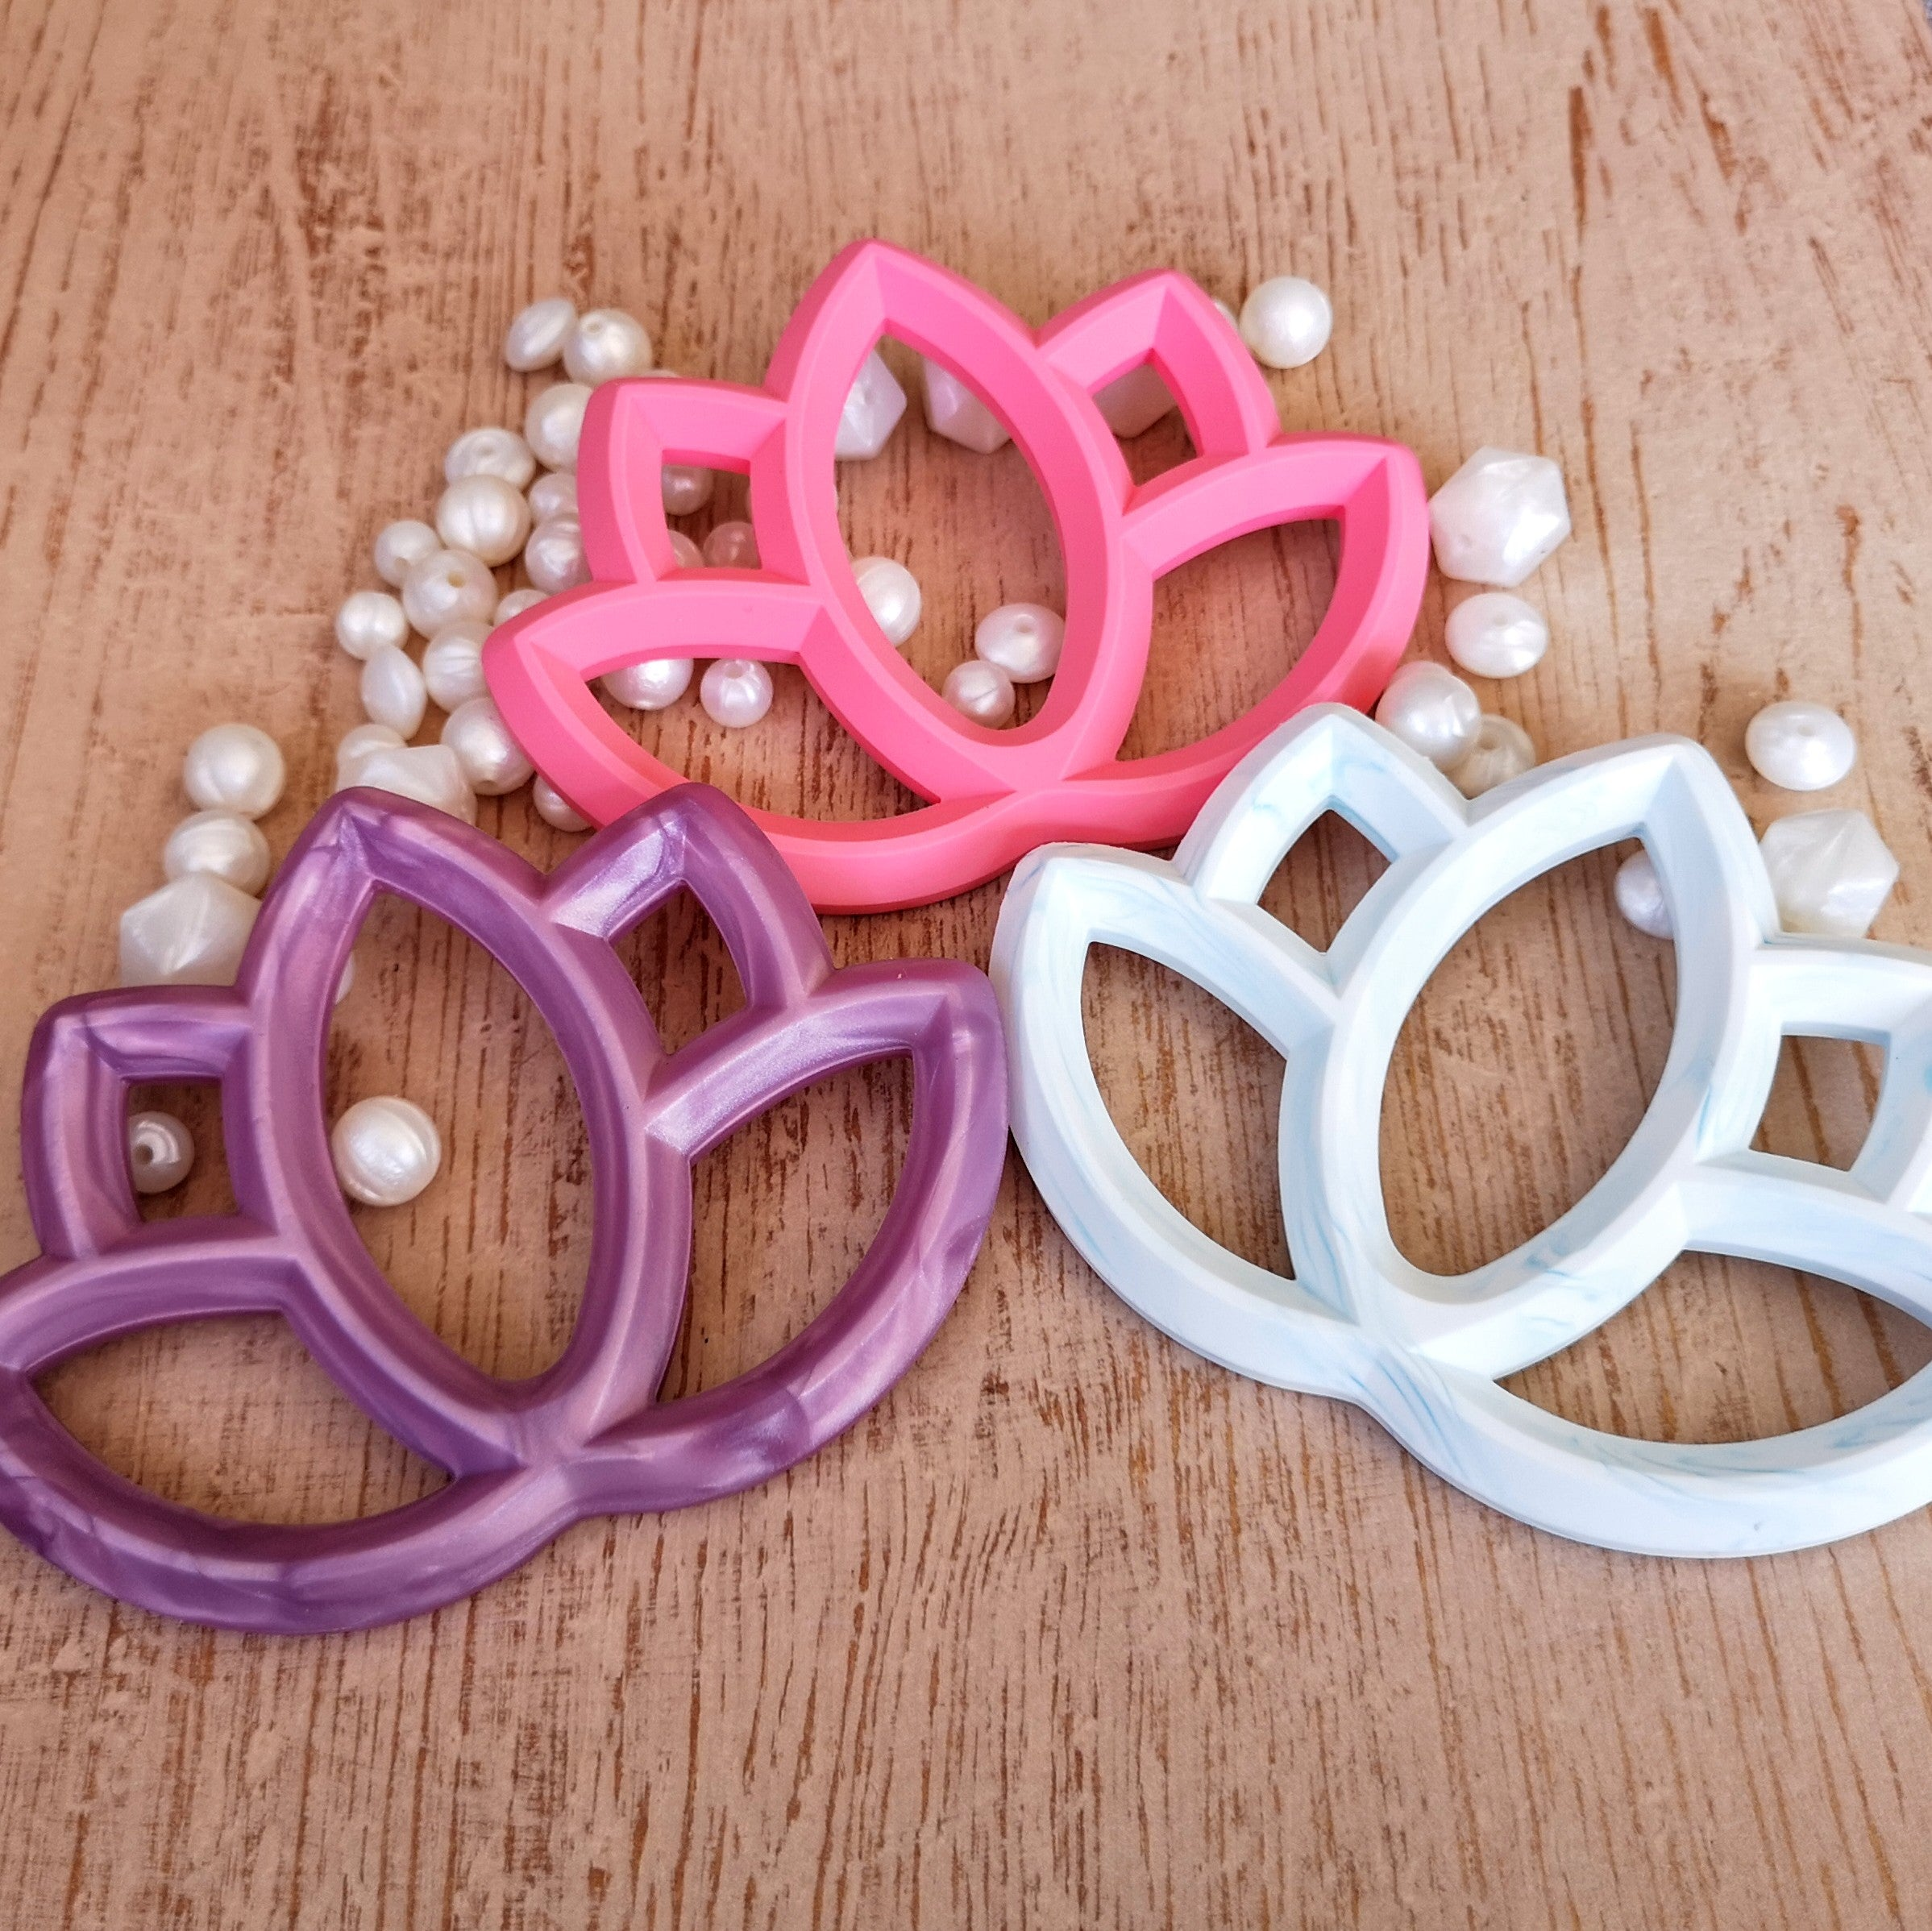 zadorables-2.myshopify.com Lotus Flower Teether in